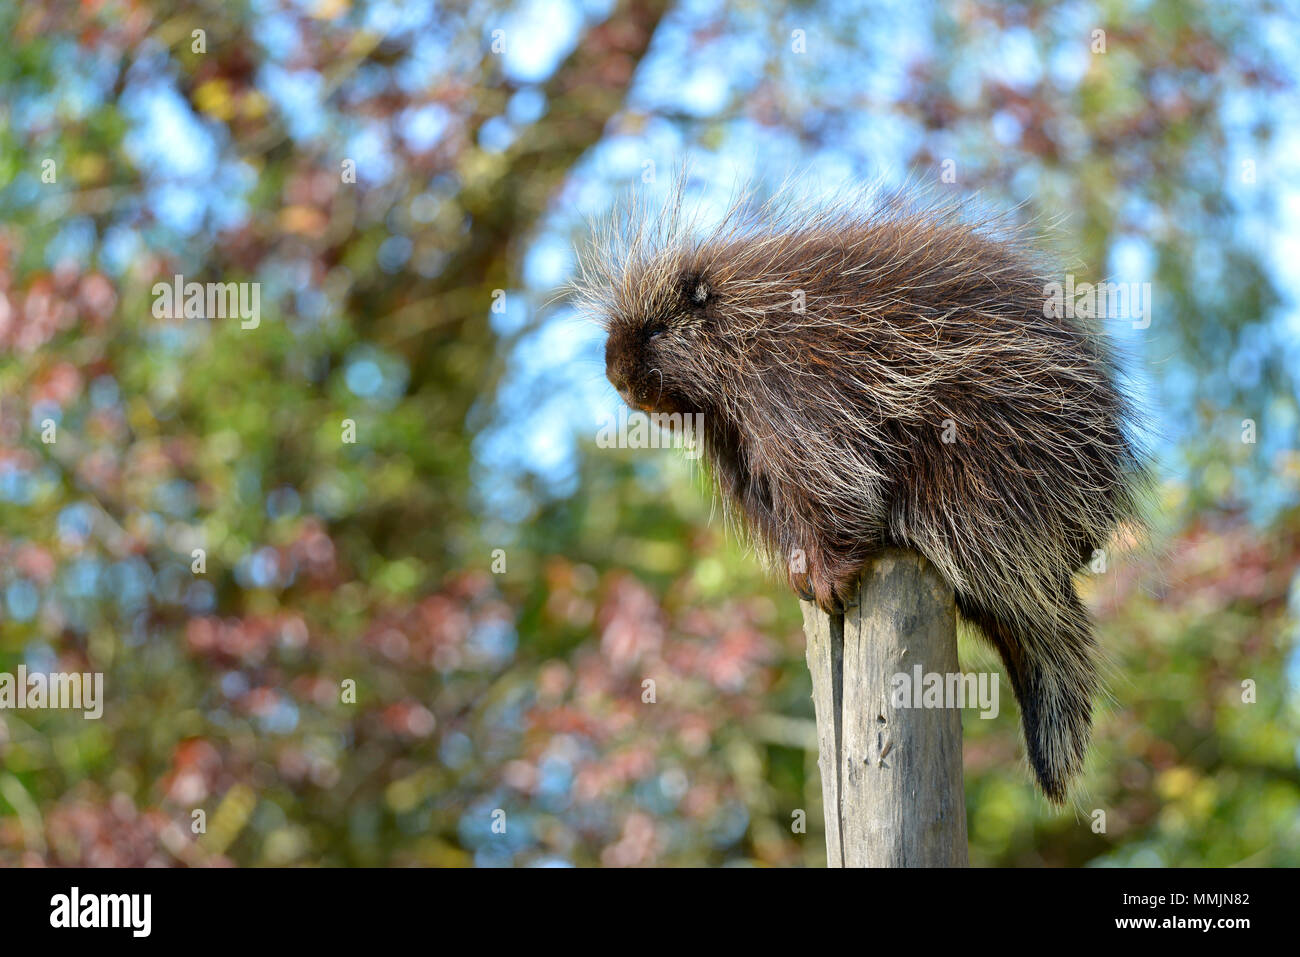 The North American porcupine (Erethizon dorsatum), also known as the Canadian porcupine or common porcupine, perched on stake - Stock Image